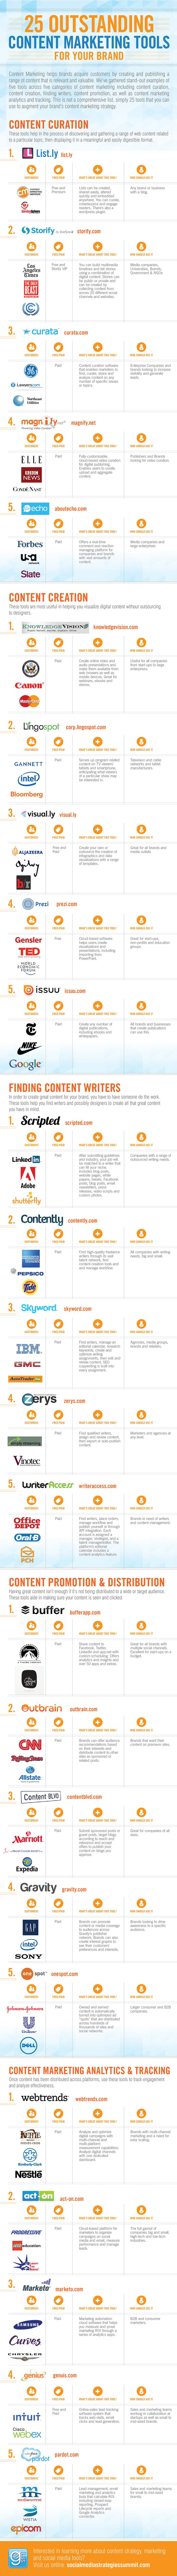 25 Awesome Content Marketing Tools To Use In 2014